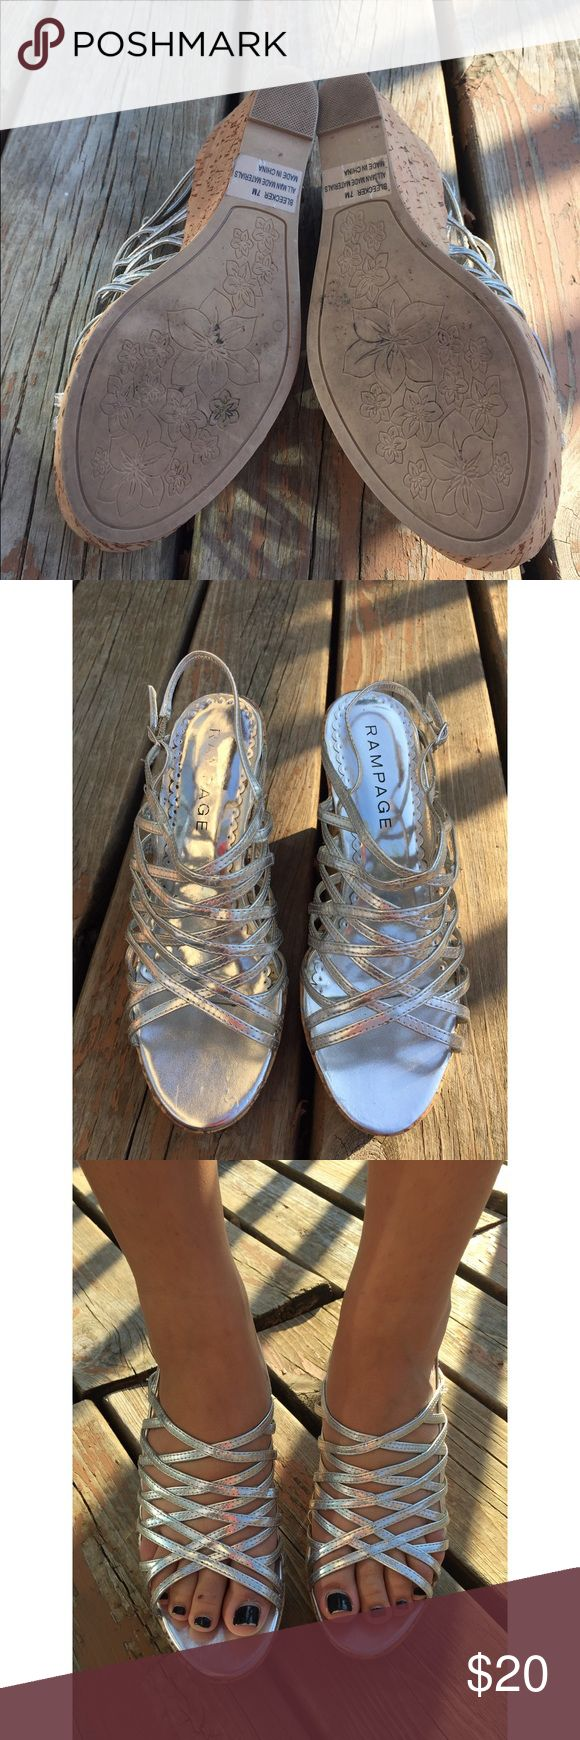 Rampage: Silver wedge sandals, size 7, worn once Rampage: Silver wedge sandals. On trend metallic. Size 7. Dressy & comfortable.  Perfect for Prom or Homecoming. Dress up jeans, look fab with dress/skirt. Worn once. Rampage Shoes Wedges